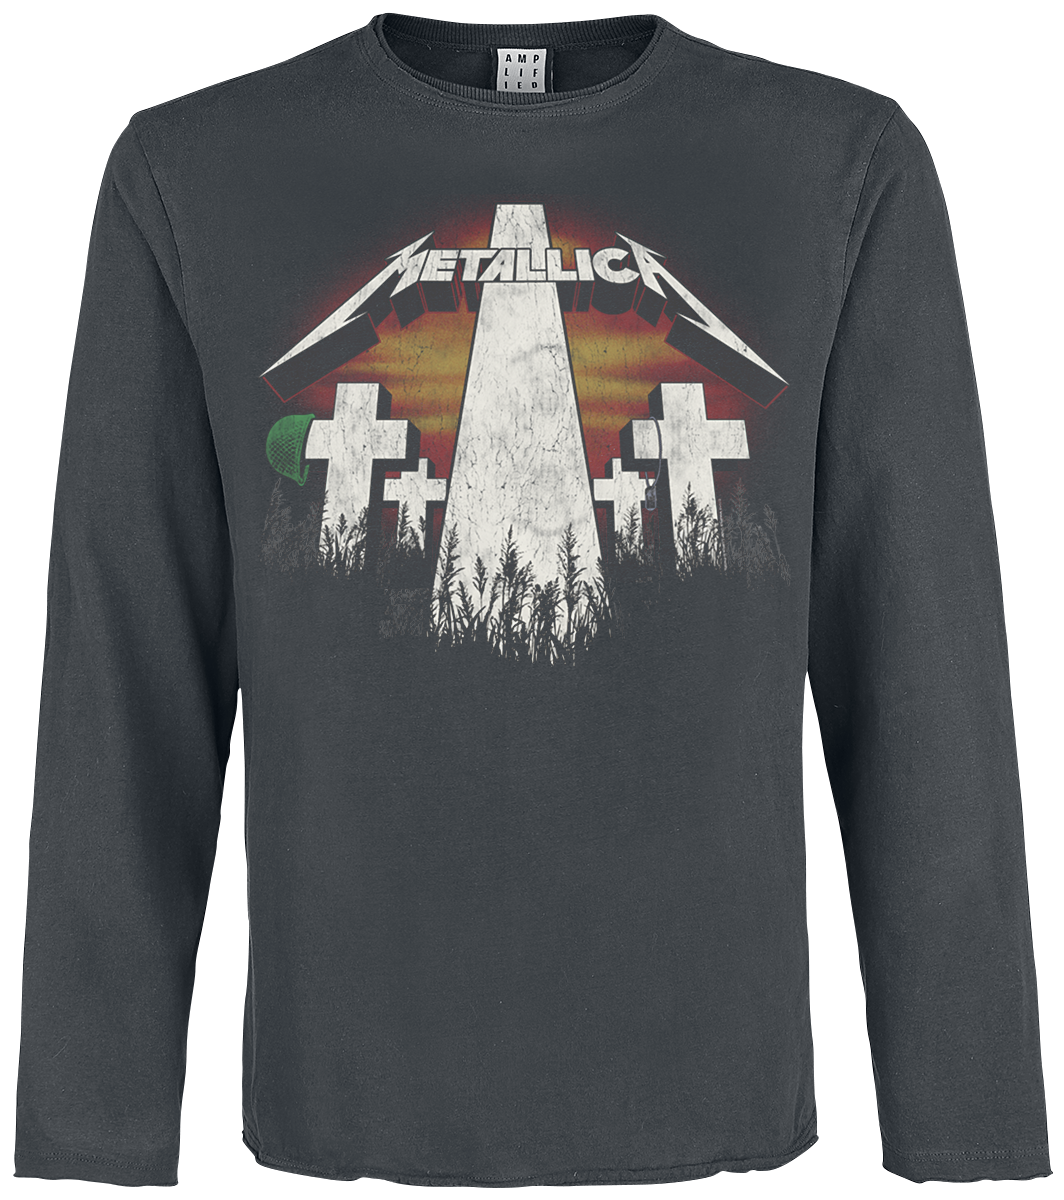 Metallica - Amplified Collection - Master Of Puppets - Longsleeve - charcoal image